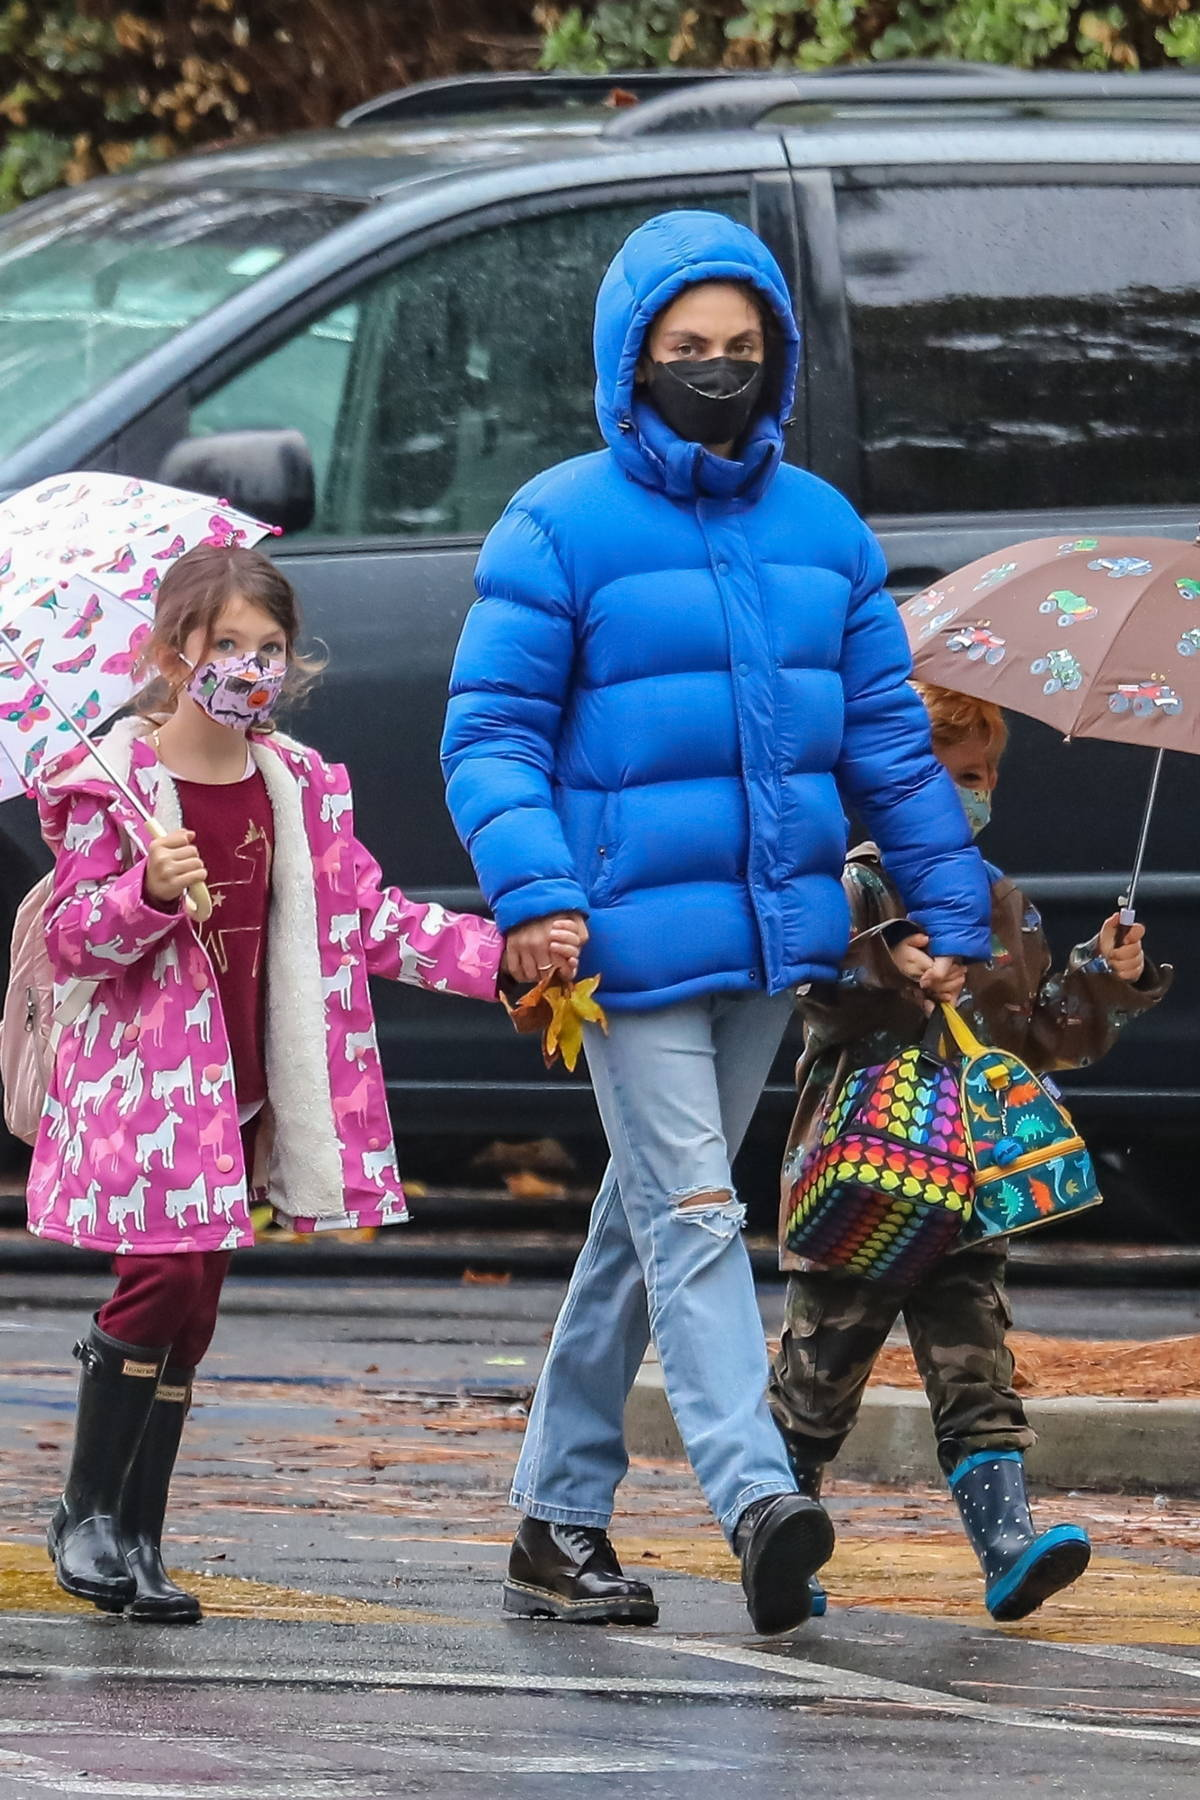 Mila Kunis wears a puffy blue rain jacket as she steps out in the rain with her kids in Santa Monica, California